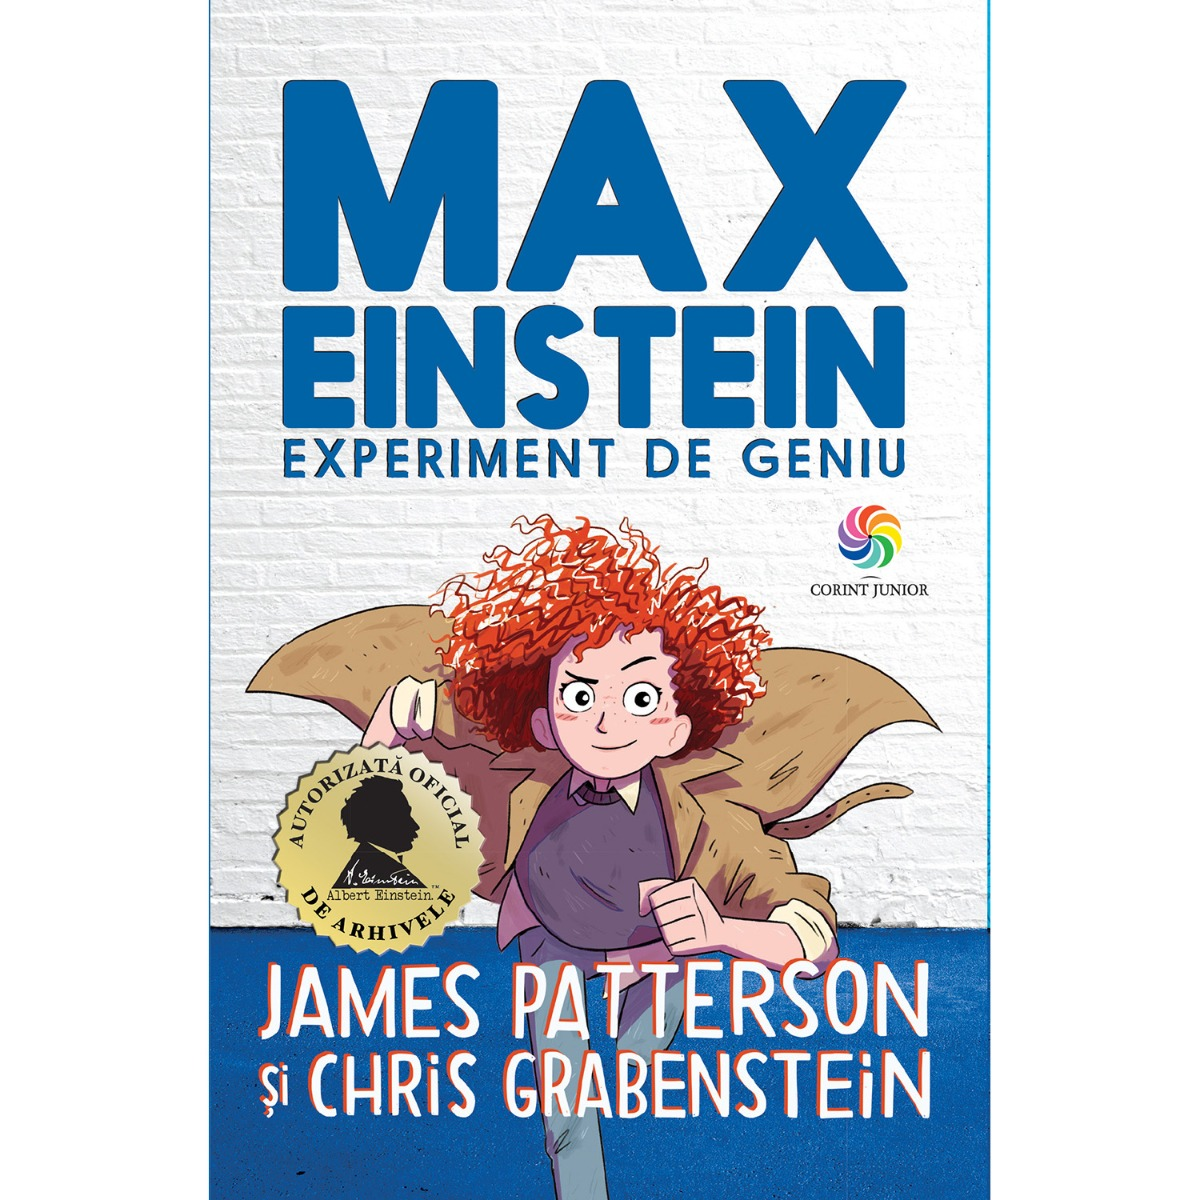 Carte Editura Corint, Max Einstein. Experiment de geniu, James Patterson, Chris Grabenstein